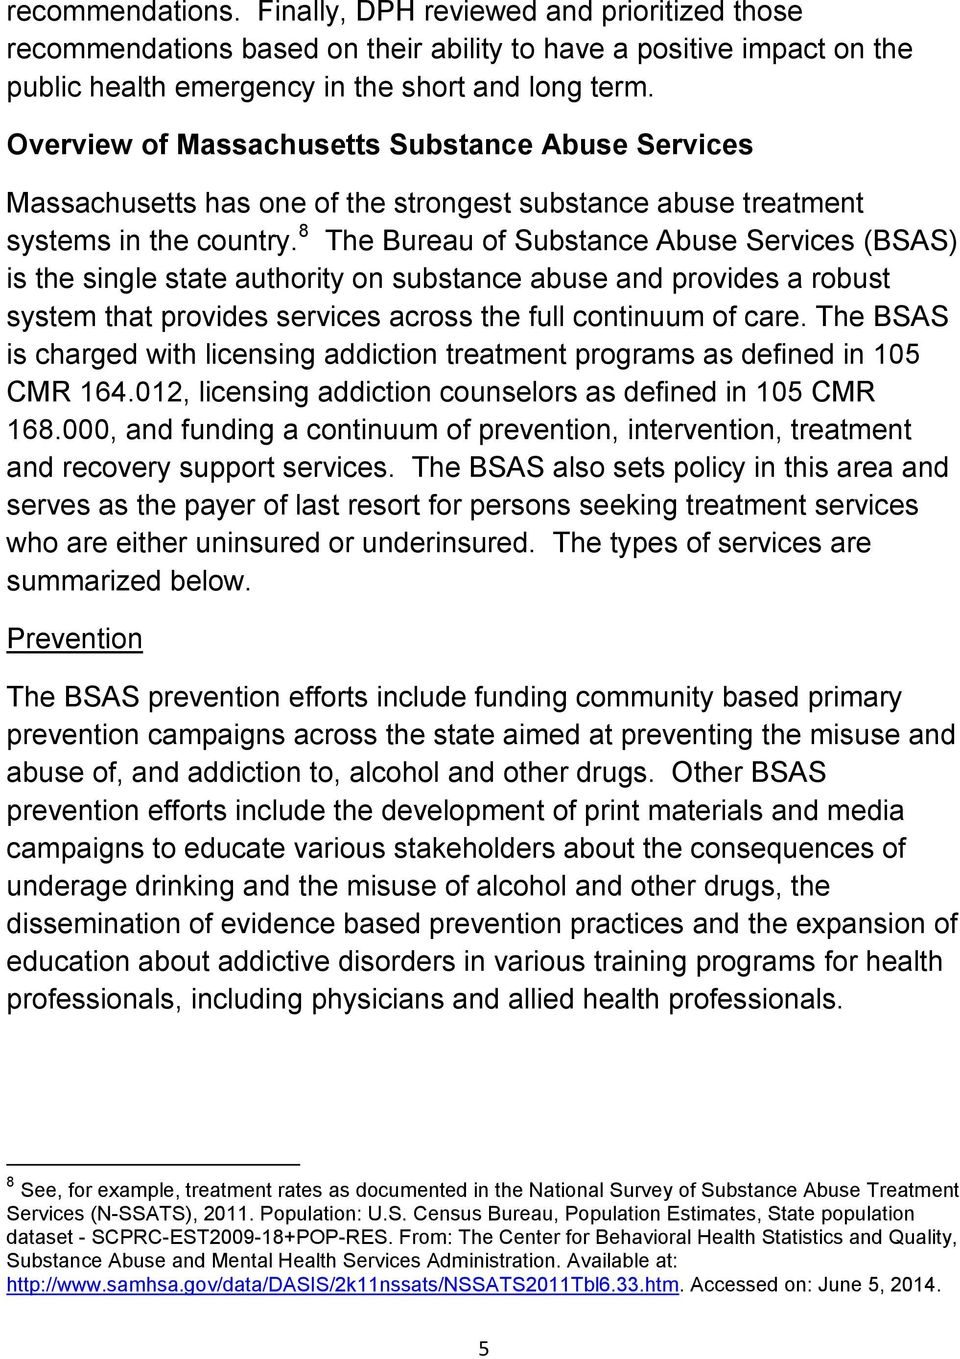 8 The Bureau of Substance Abuse Services (BSAS) is the single state authority on substance abuse and provides a robust system that provides services across the full continuum of care.